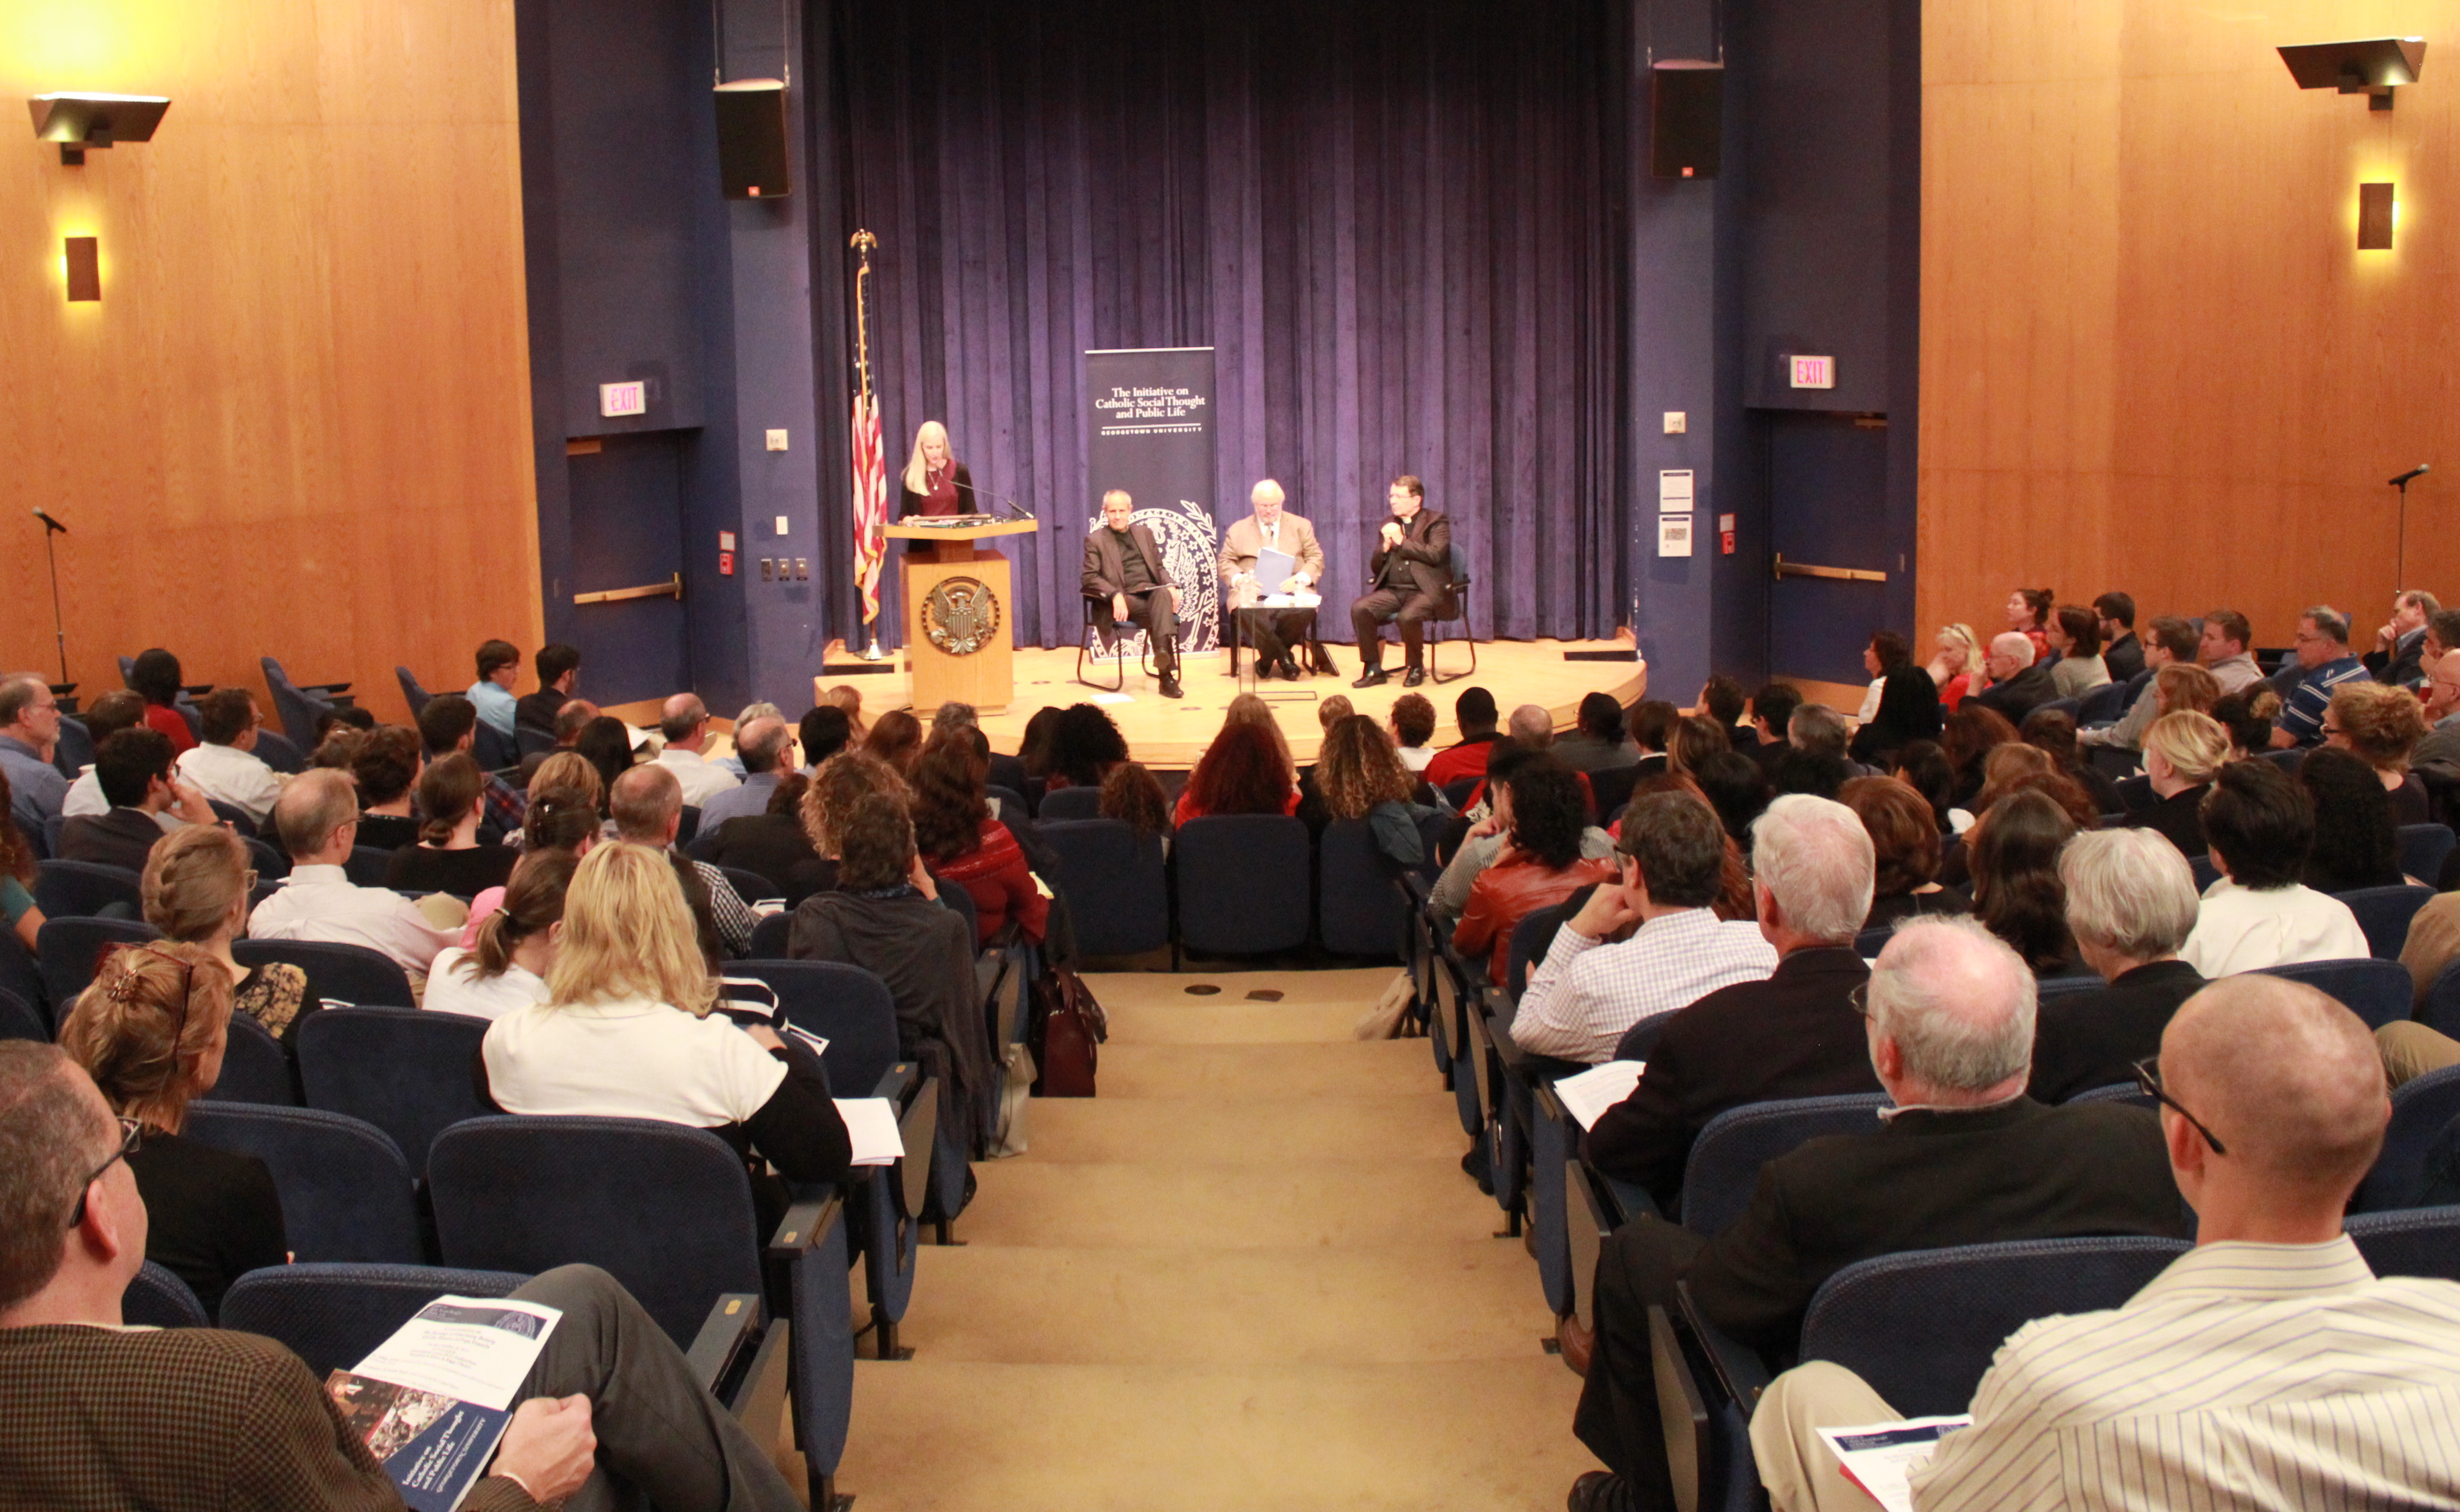 Barbara Gagliotti delivers the opening remarks to a full ICC Auditorium before the panelists begin their discussion.